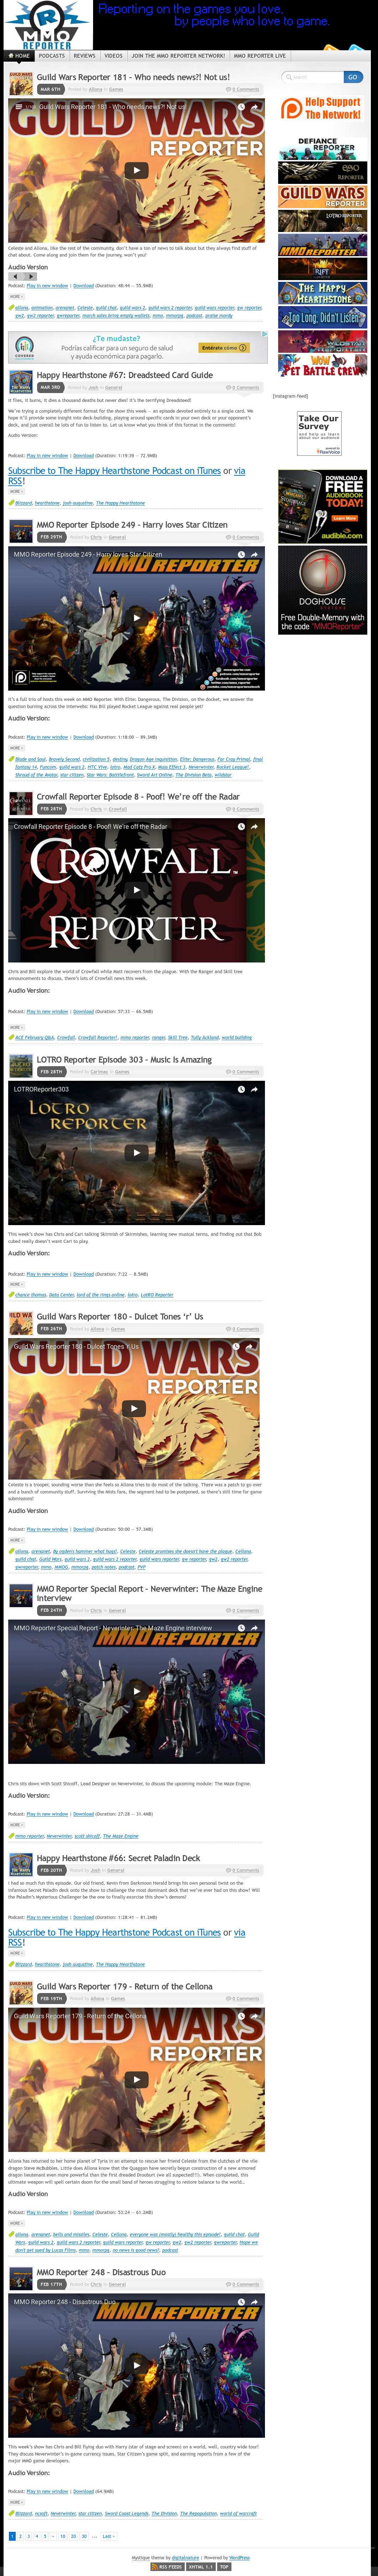 MMO Reporter Competitors, Revenue and Employees - Owler Company Profile